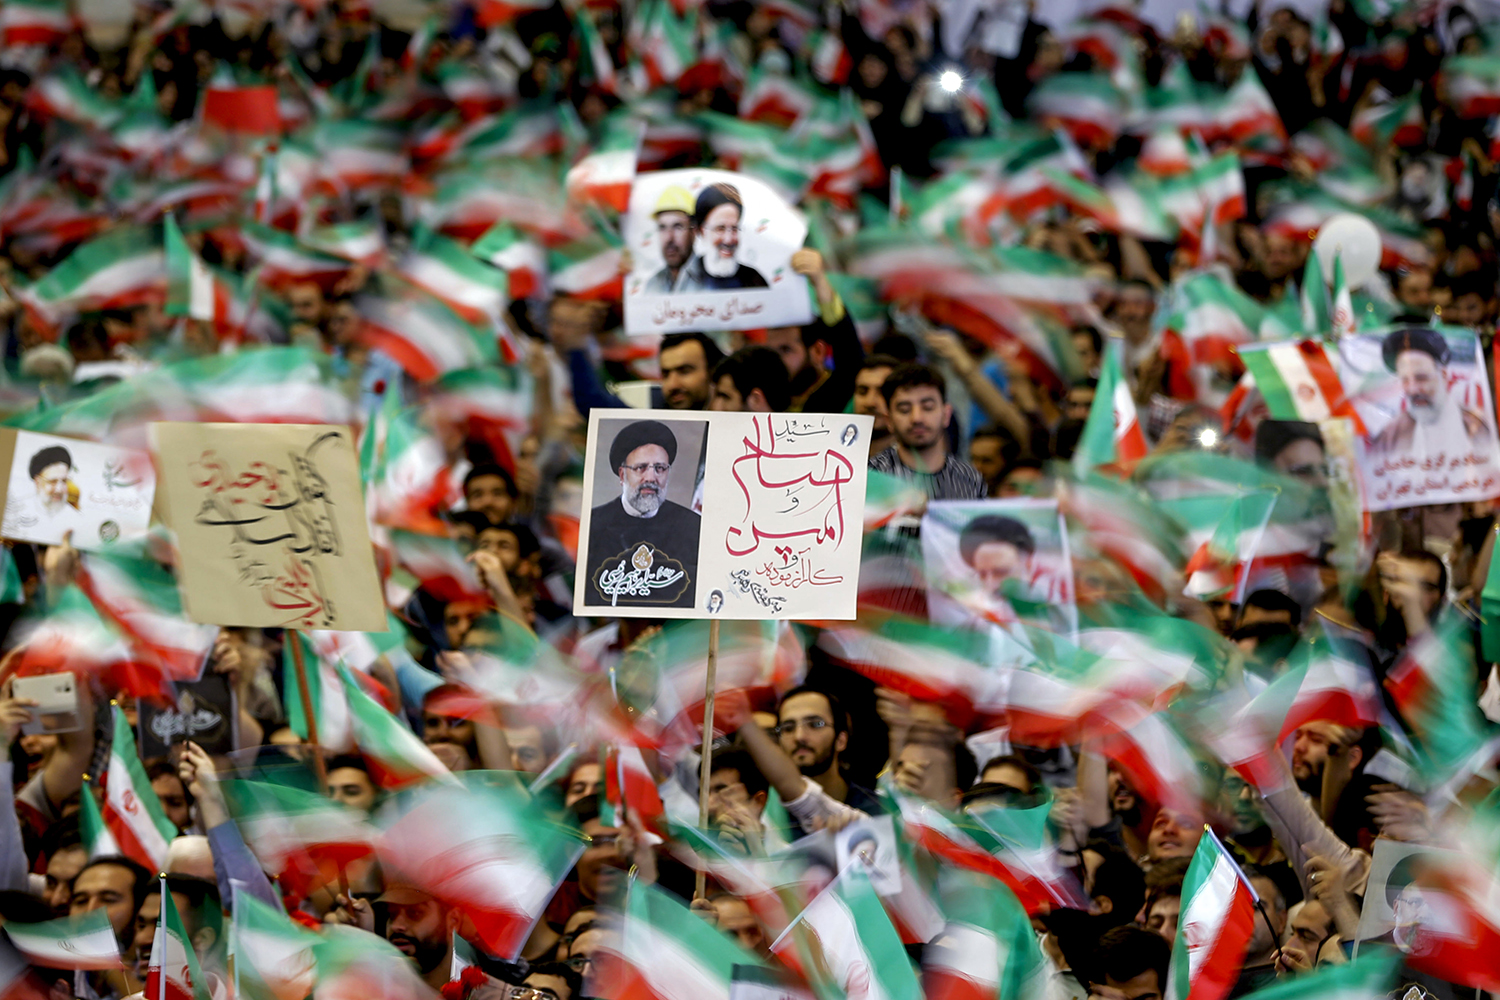 Supporters of Ebrahim Raisi wave flags